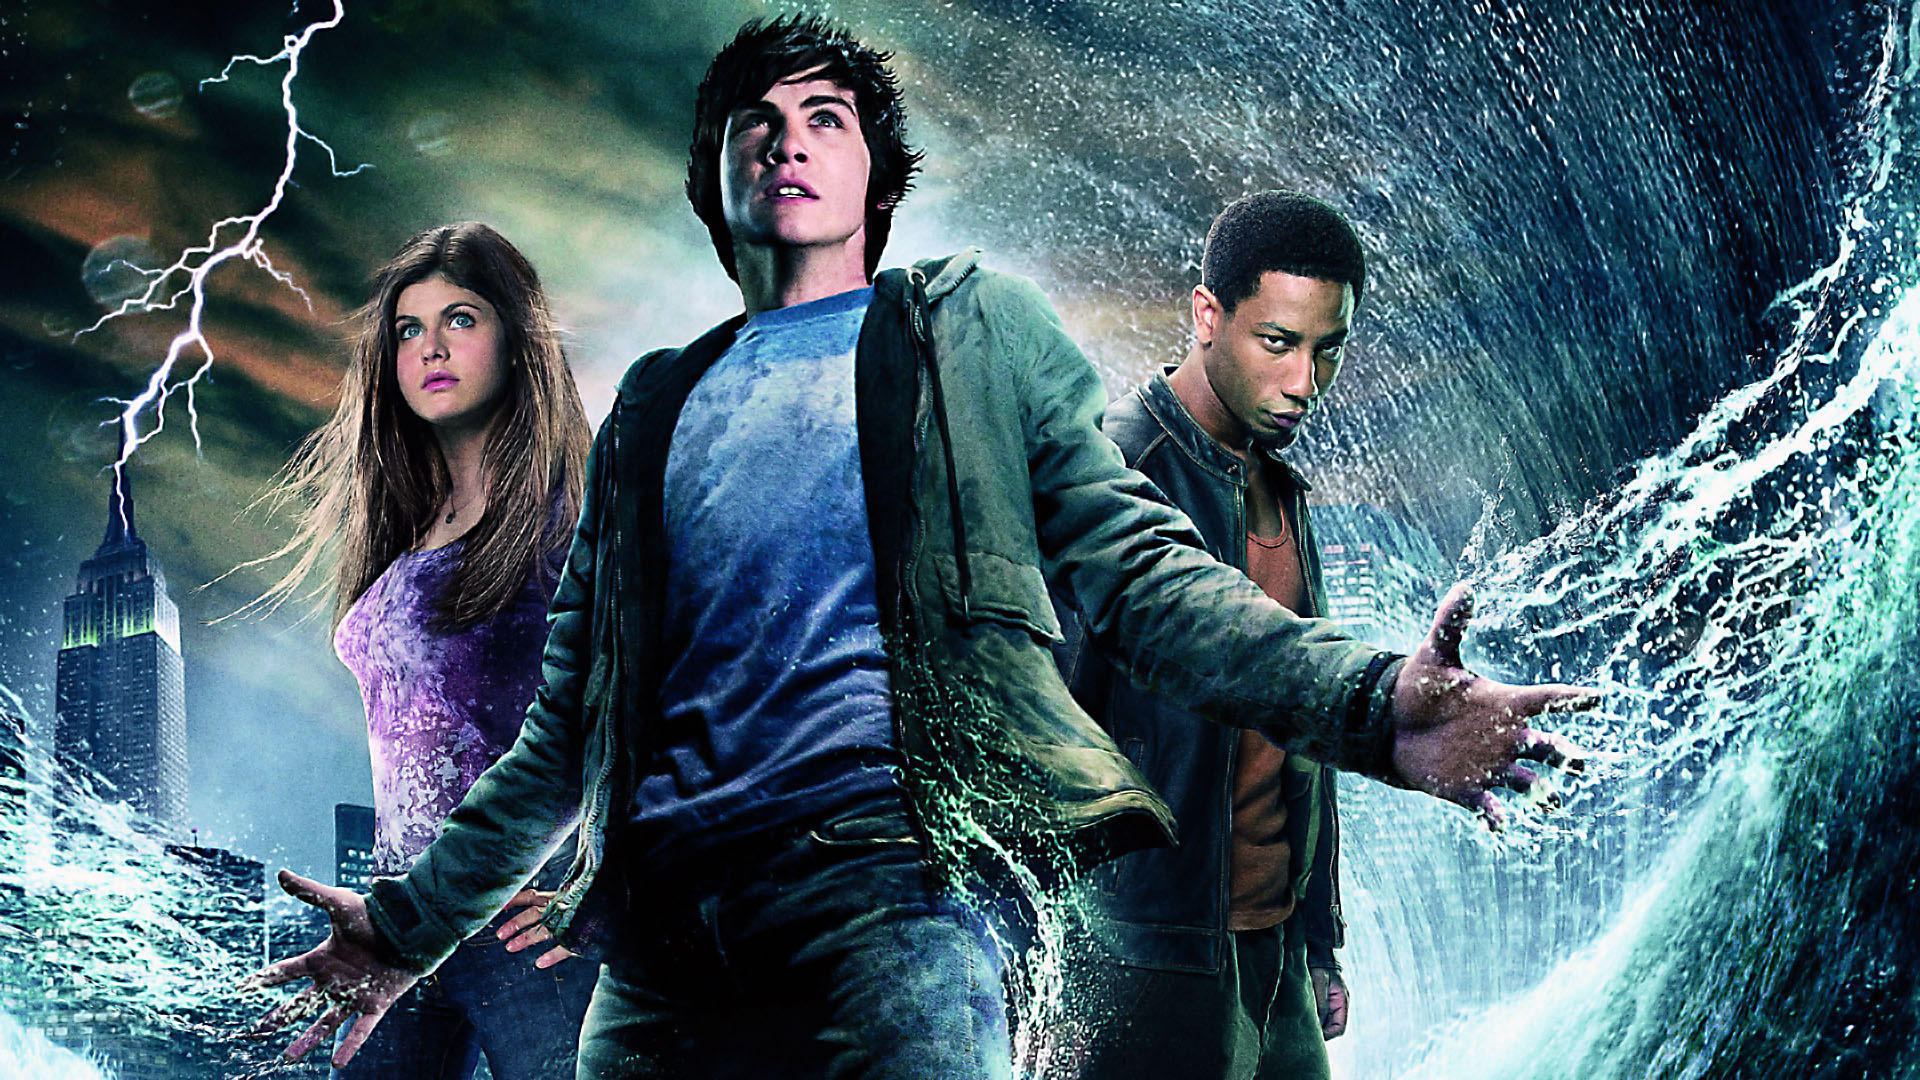 Percy Jackson: The Lightning Thief ಇ